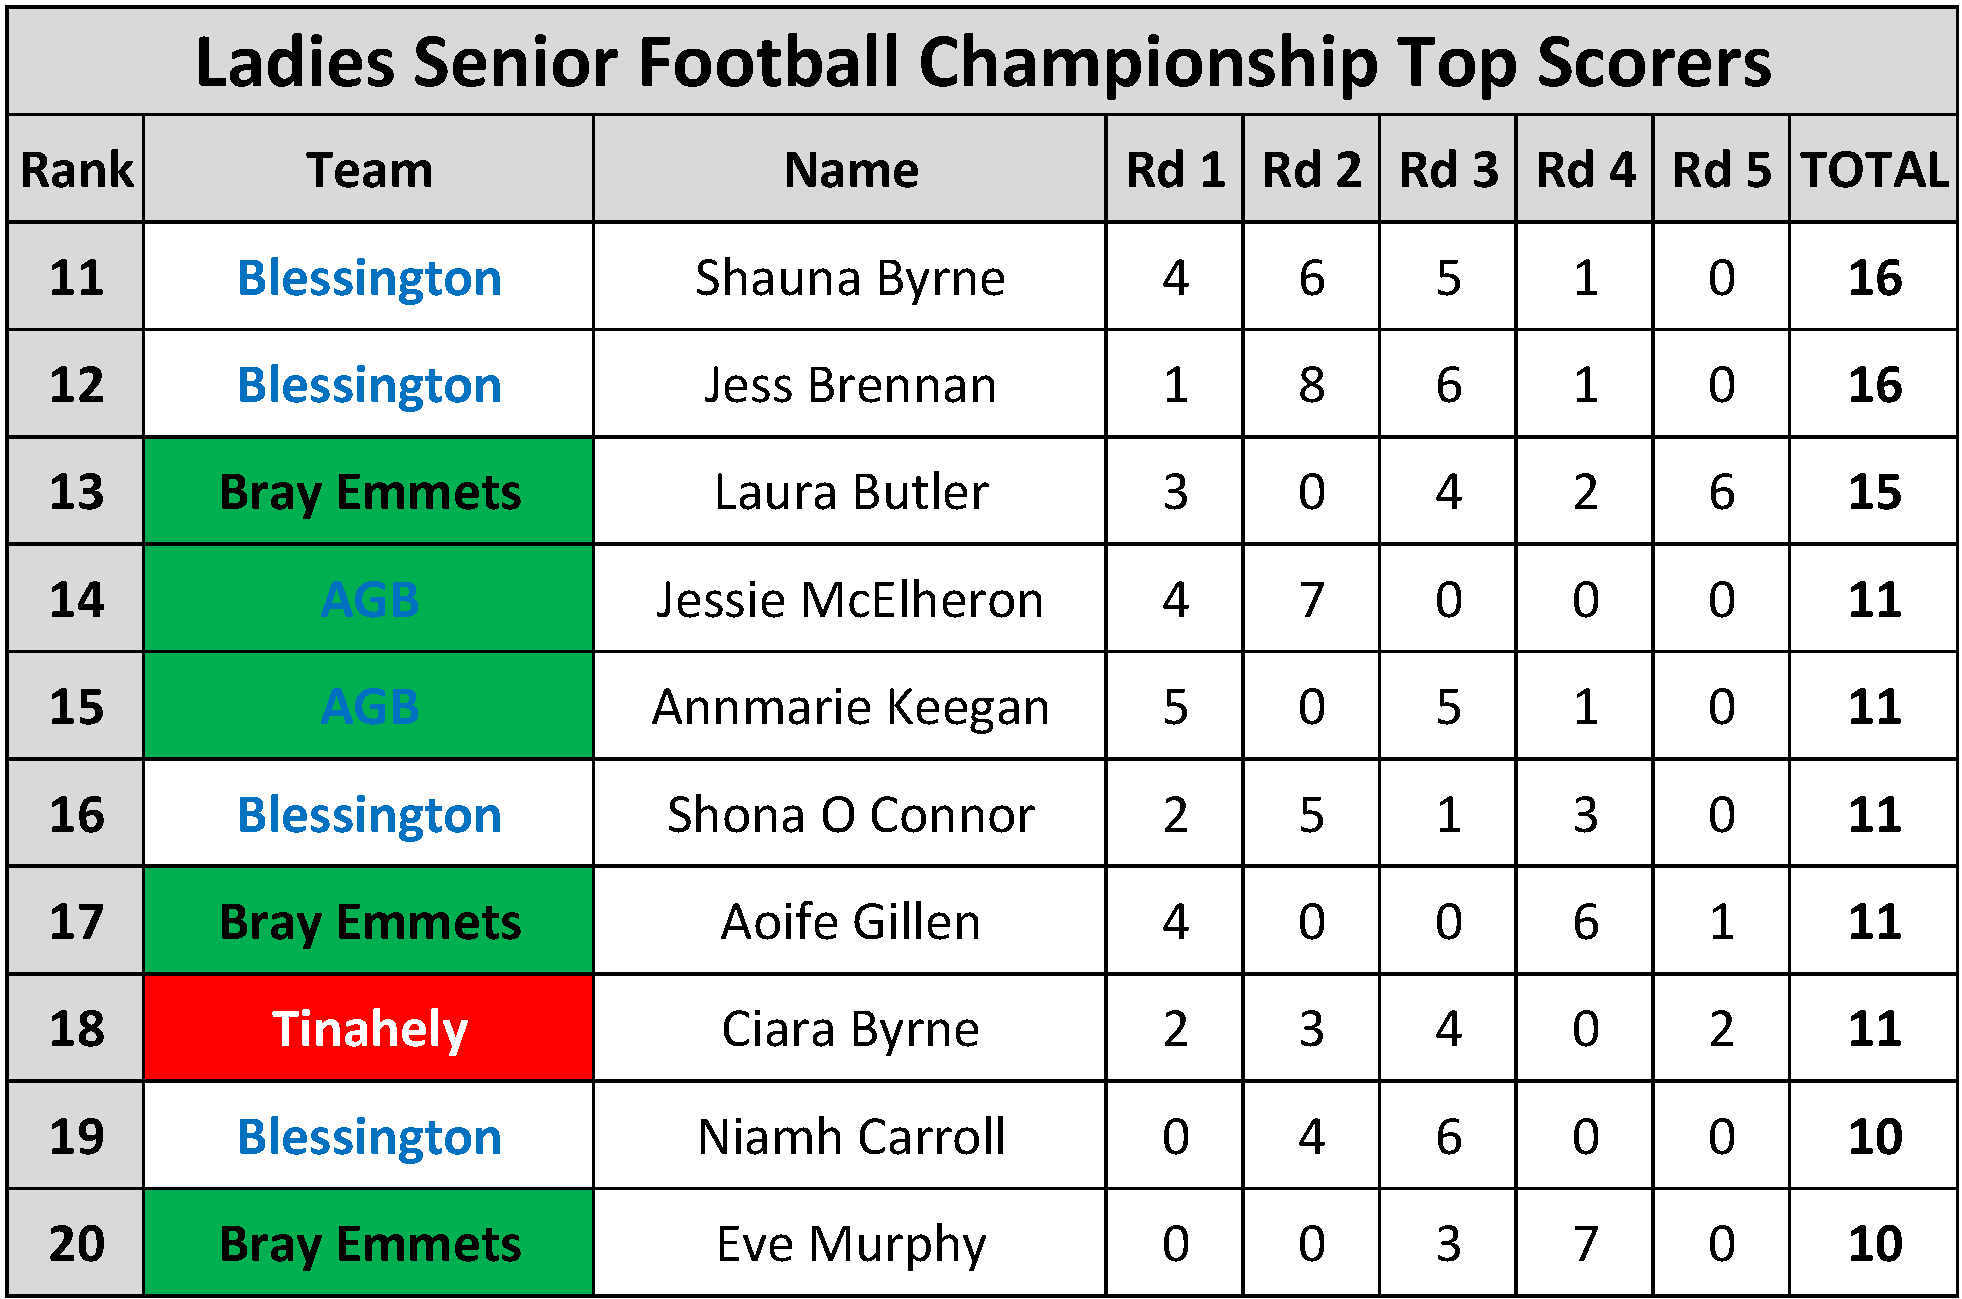 Top Scorers_Page_089